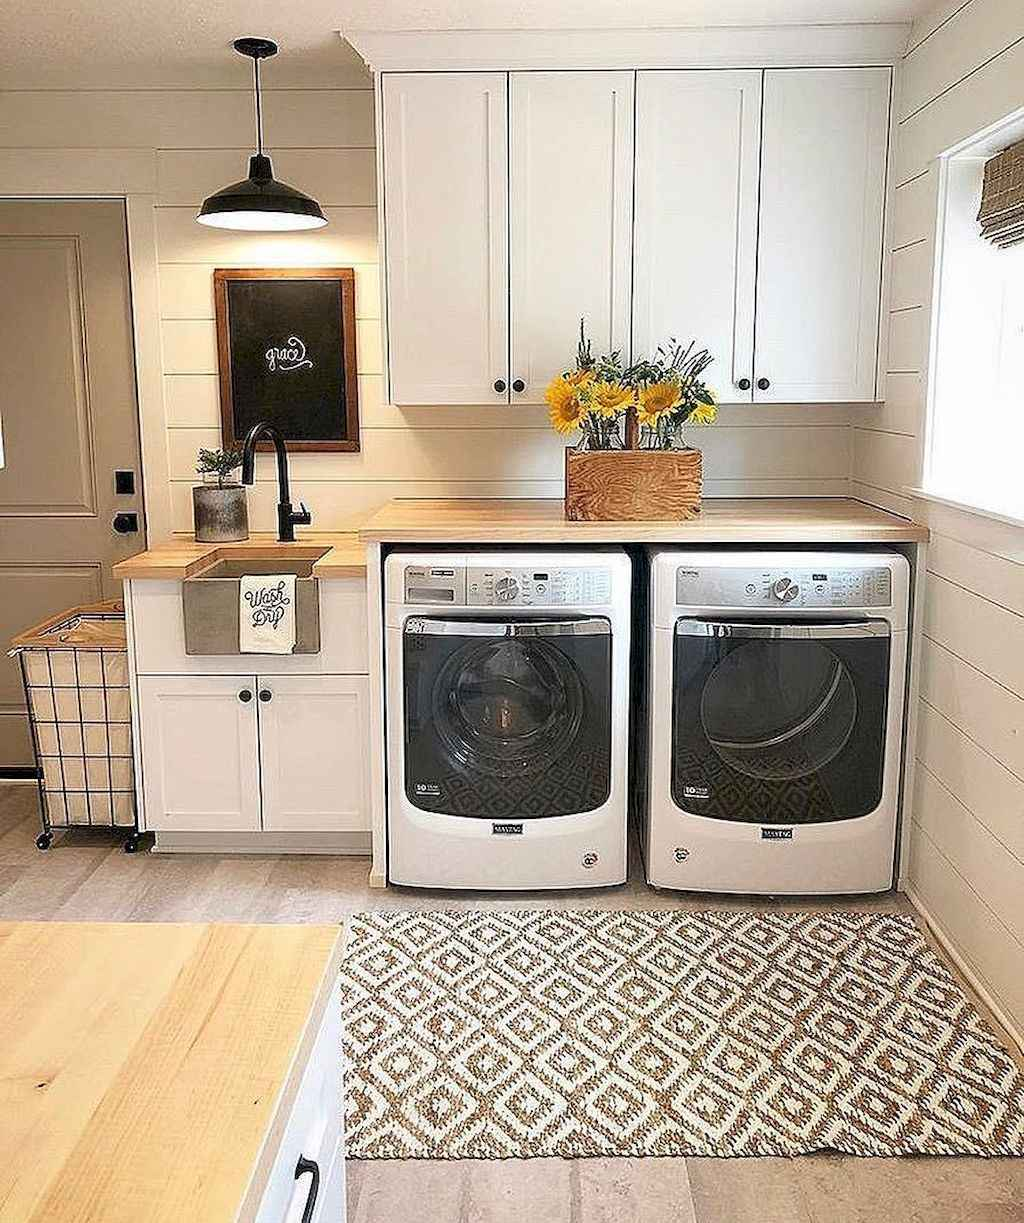 Laundry Layouts And Ideas Small Living Rooms Rustic: 55 Small Farmhouse Laundry Room Decor Ideas